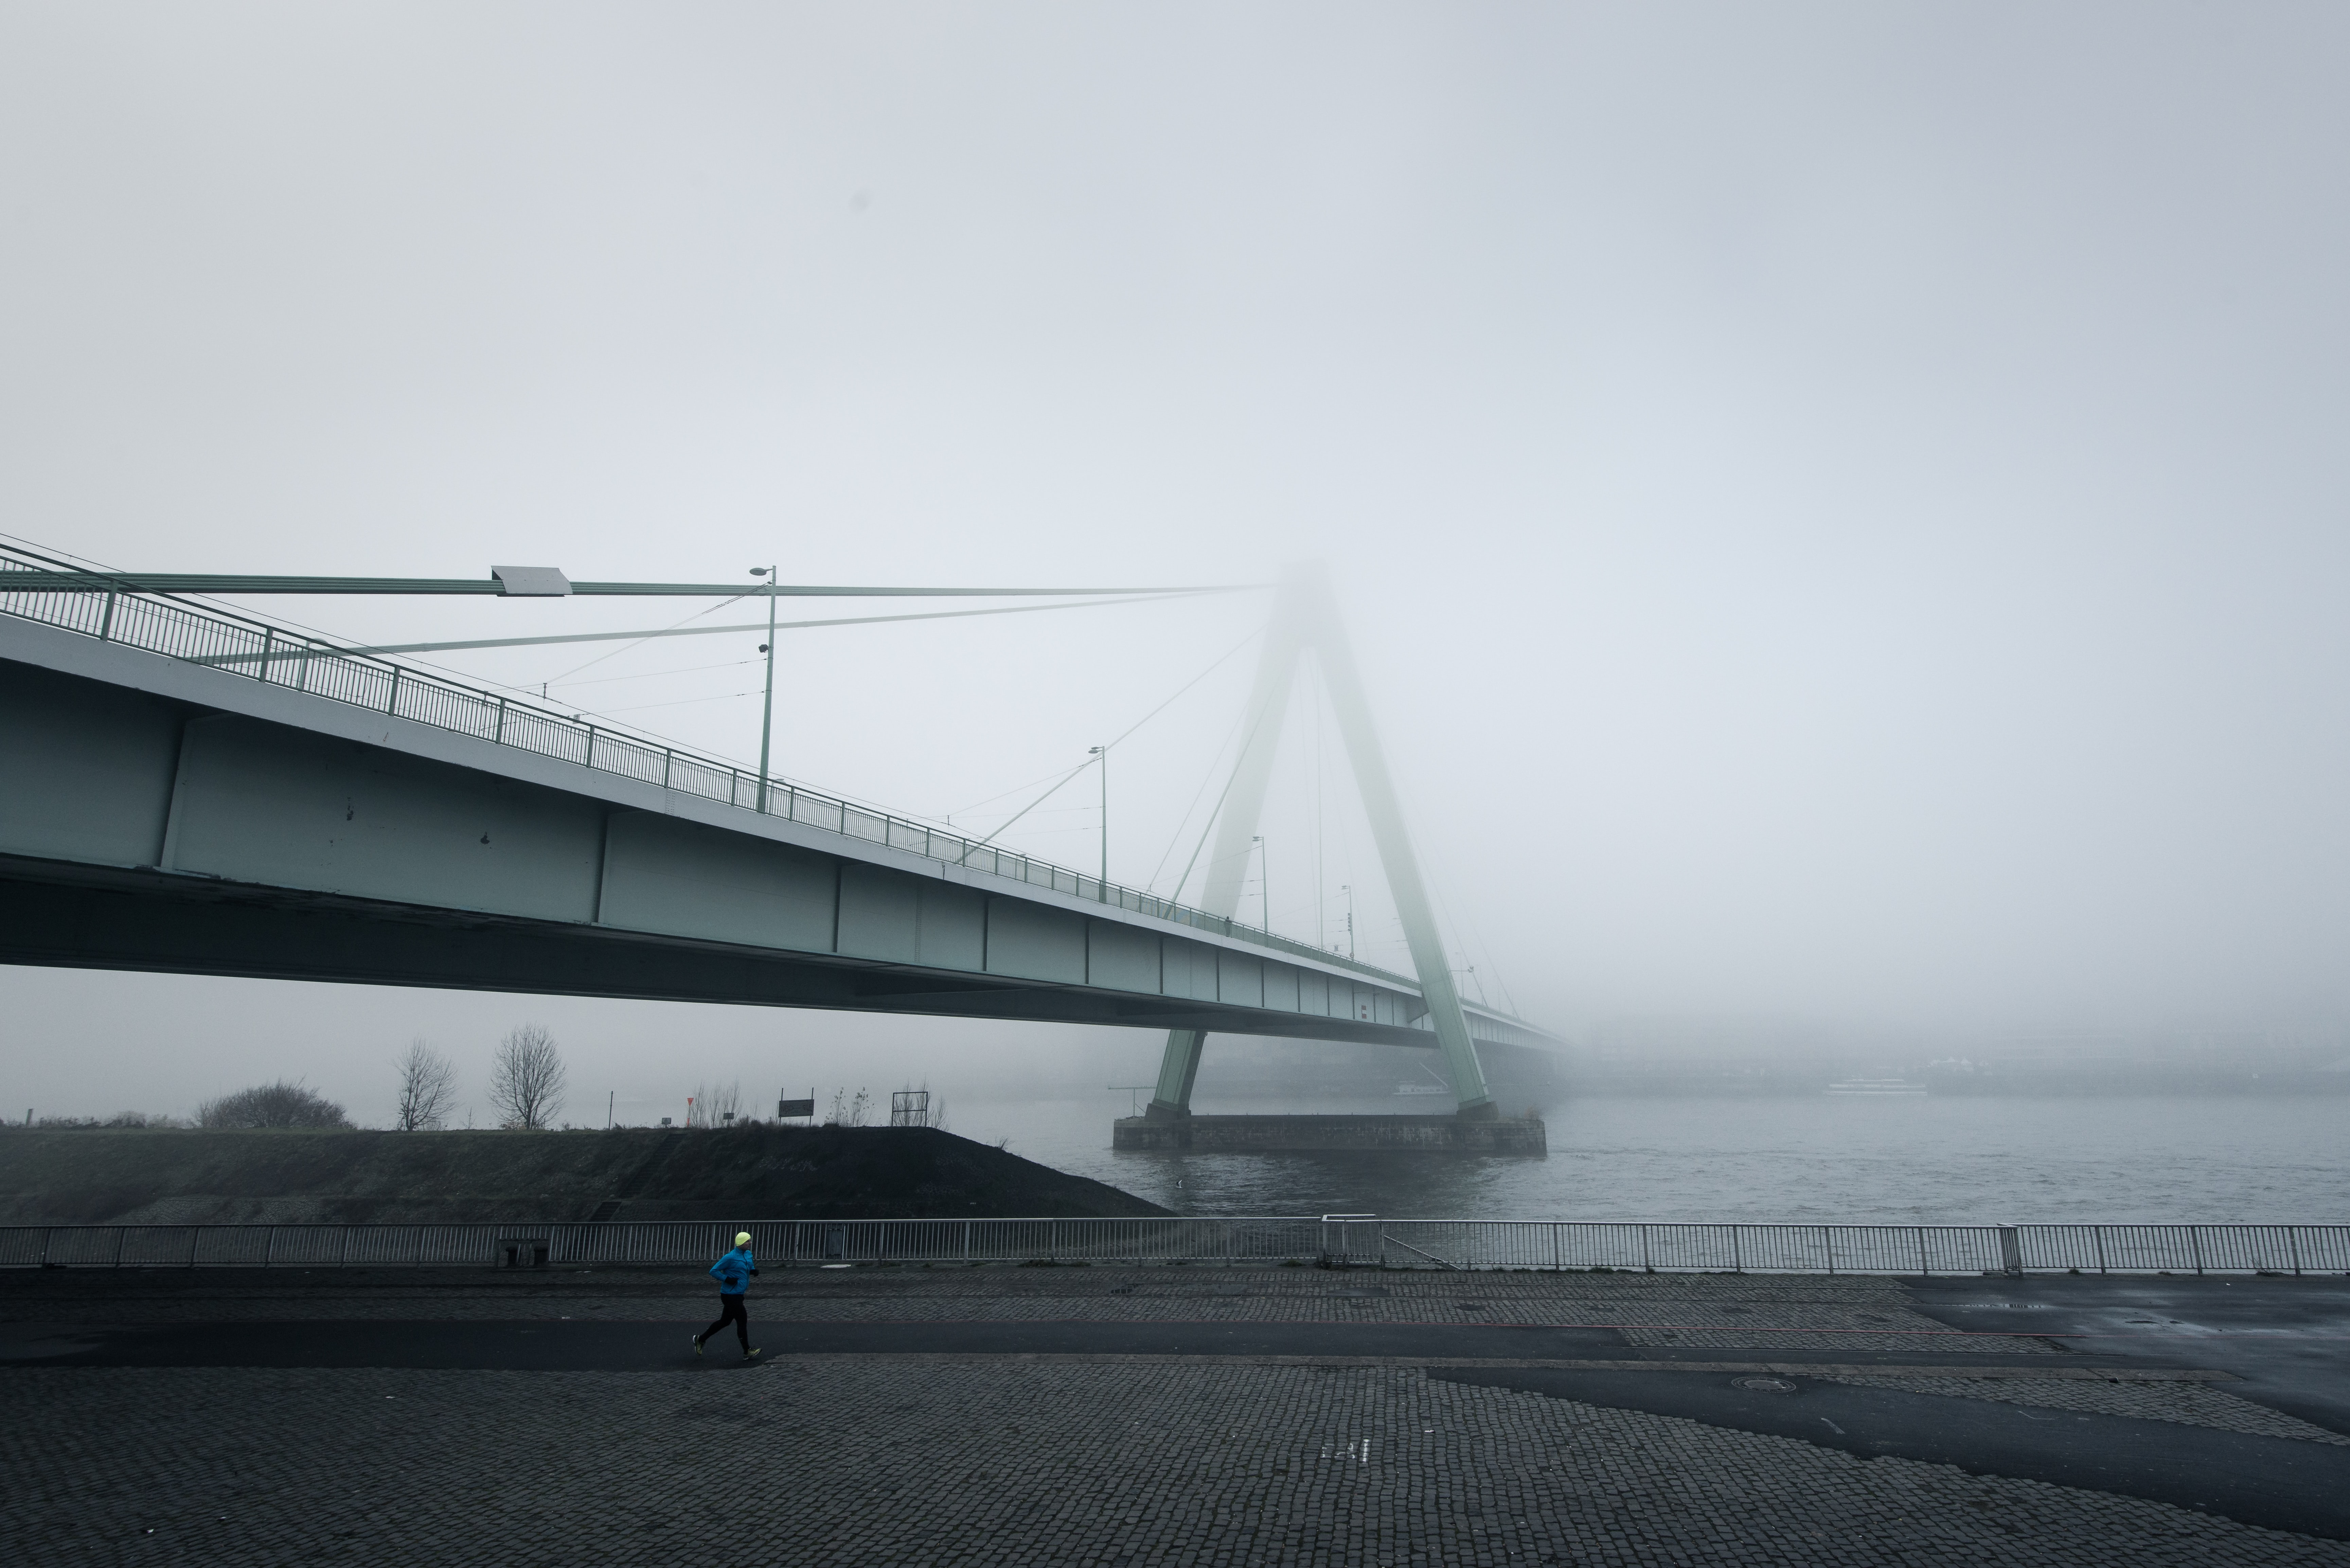 A view of a suspension bridge on a foggy, misty day